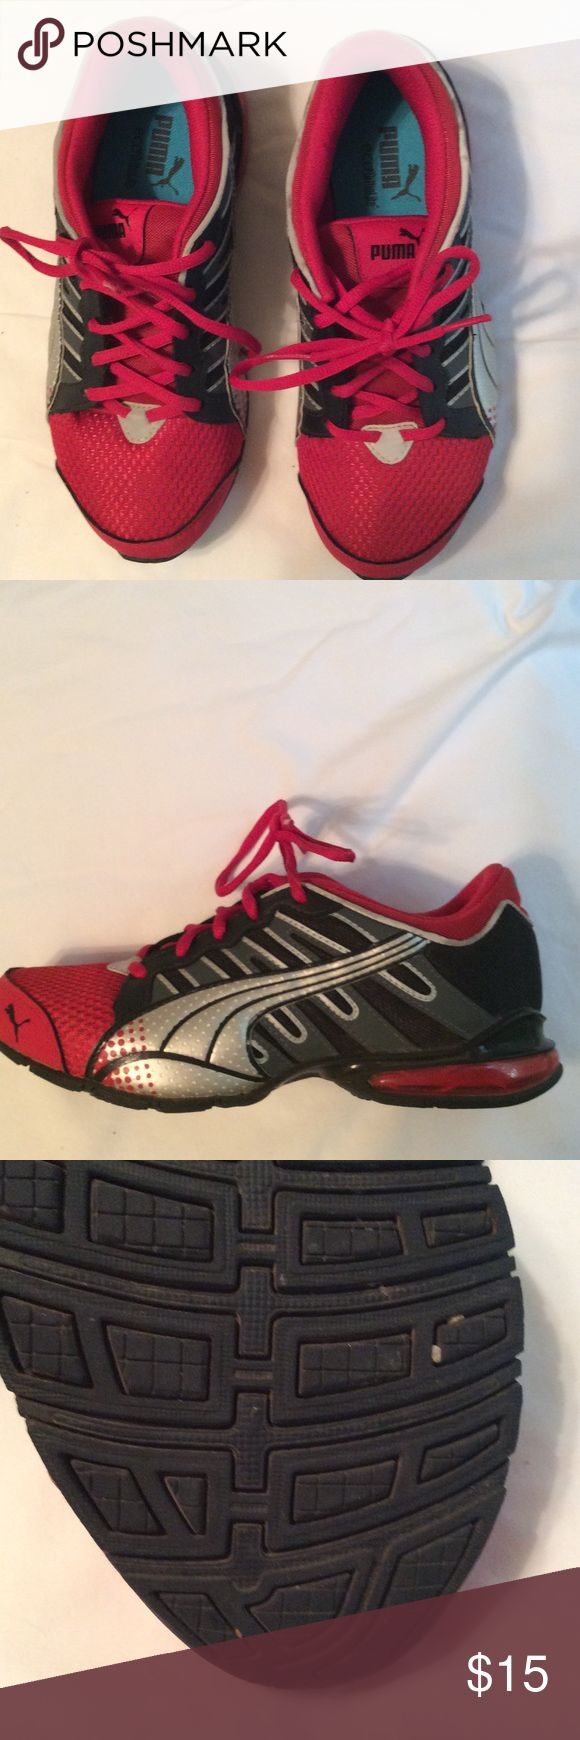 Tennis shoe Worn twice. Red, gray, black, silver Puma Shoes Athletic Shoes